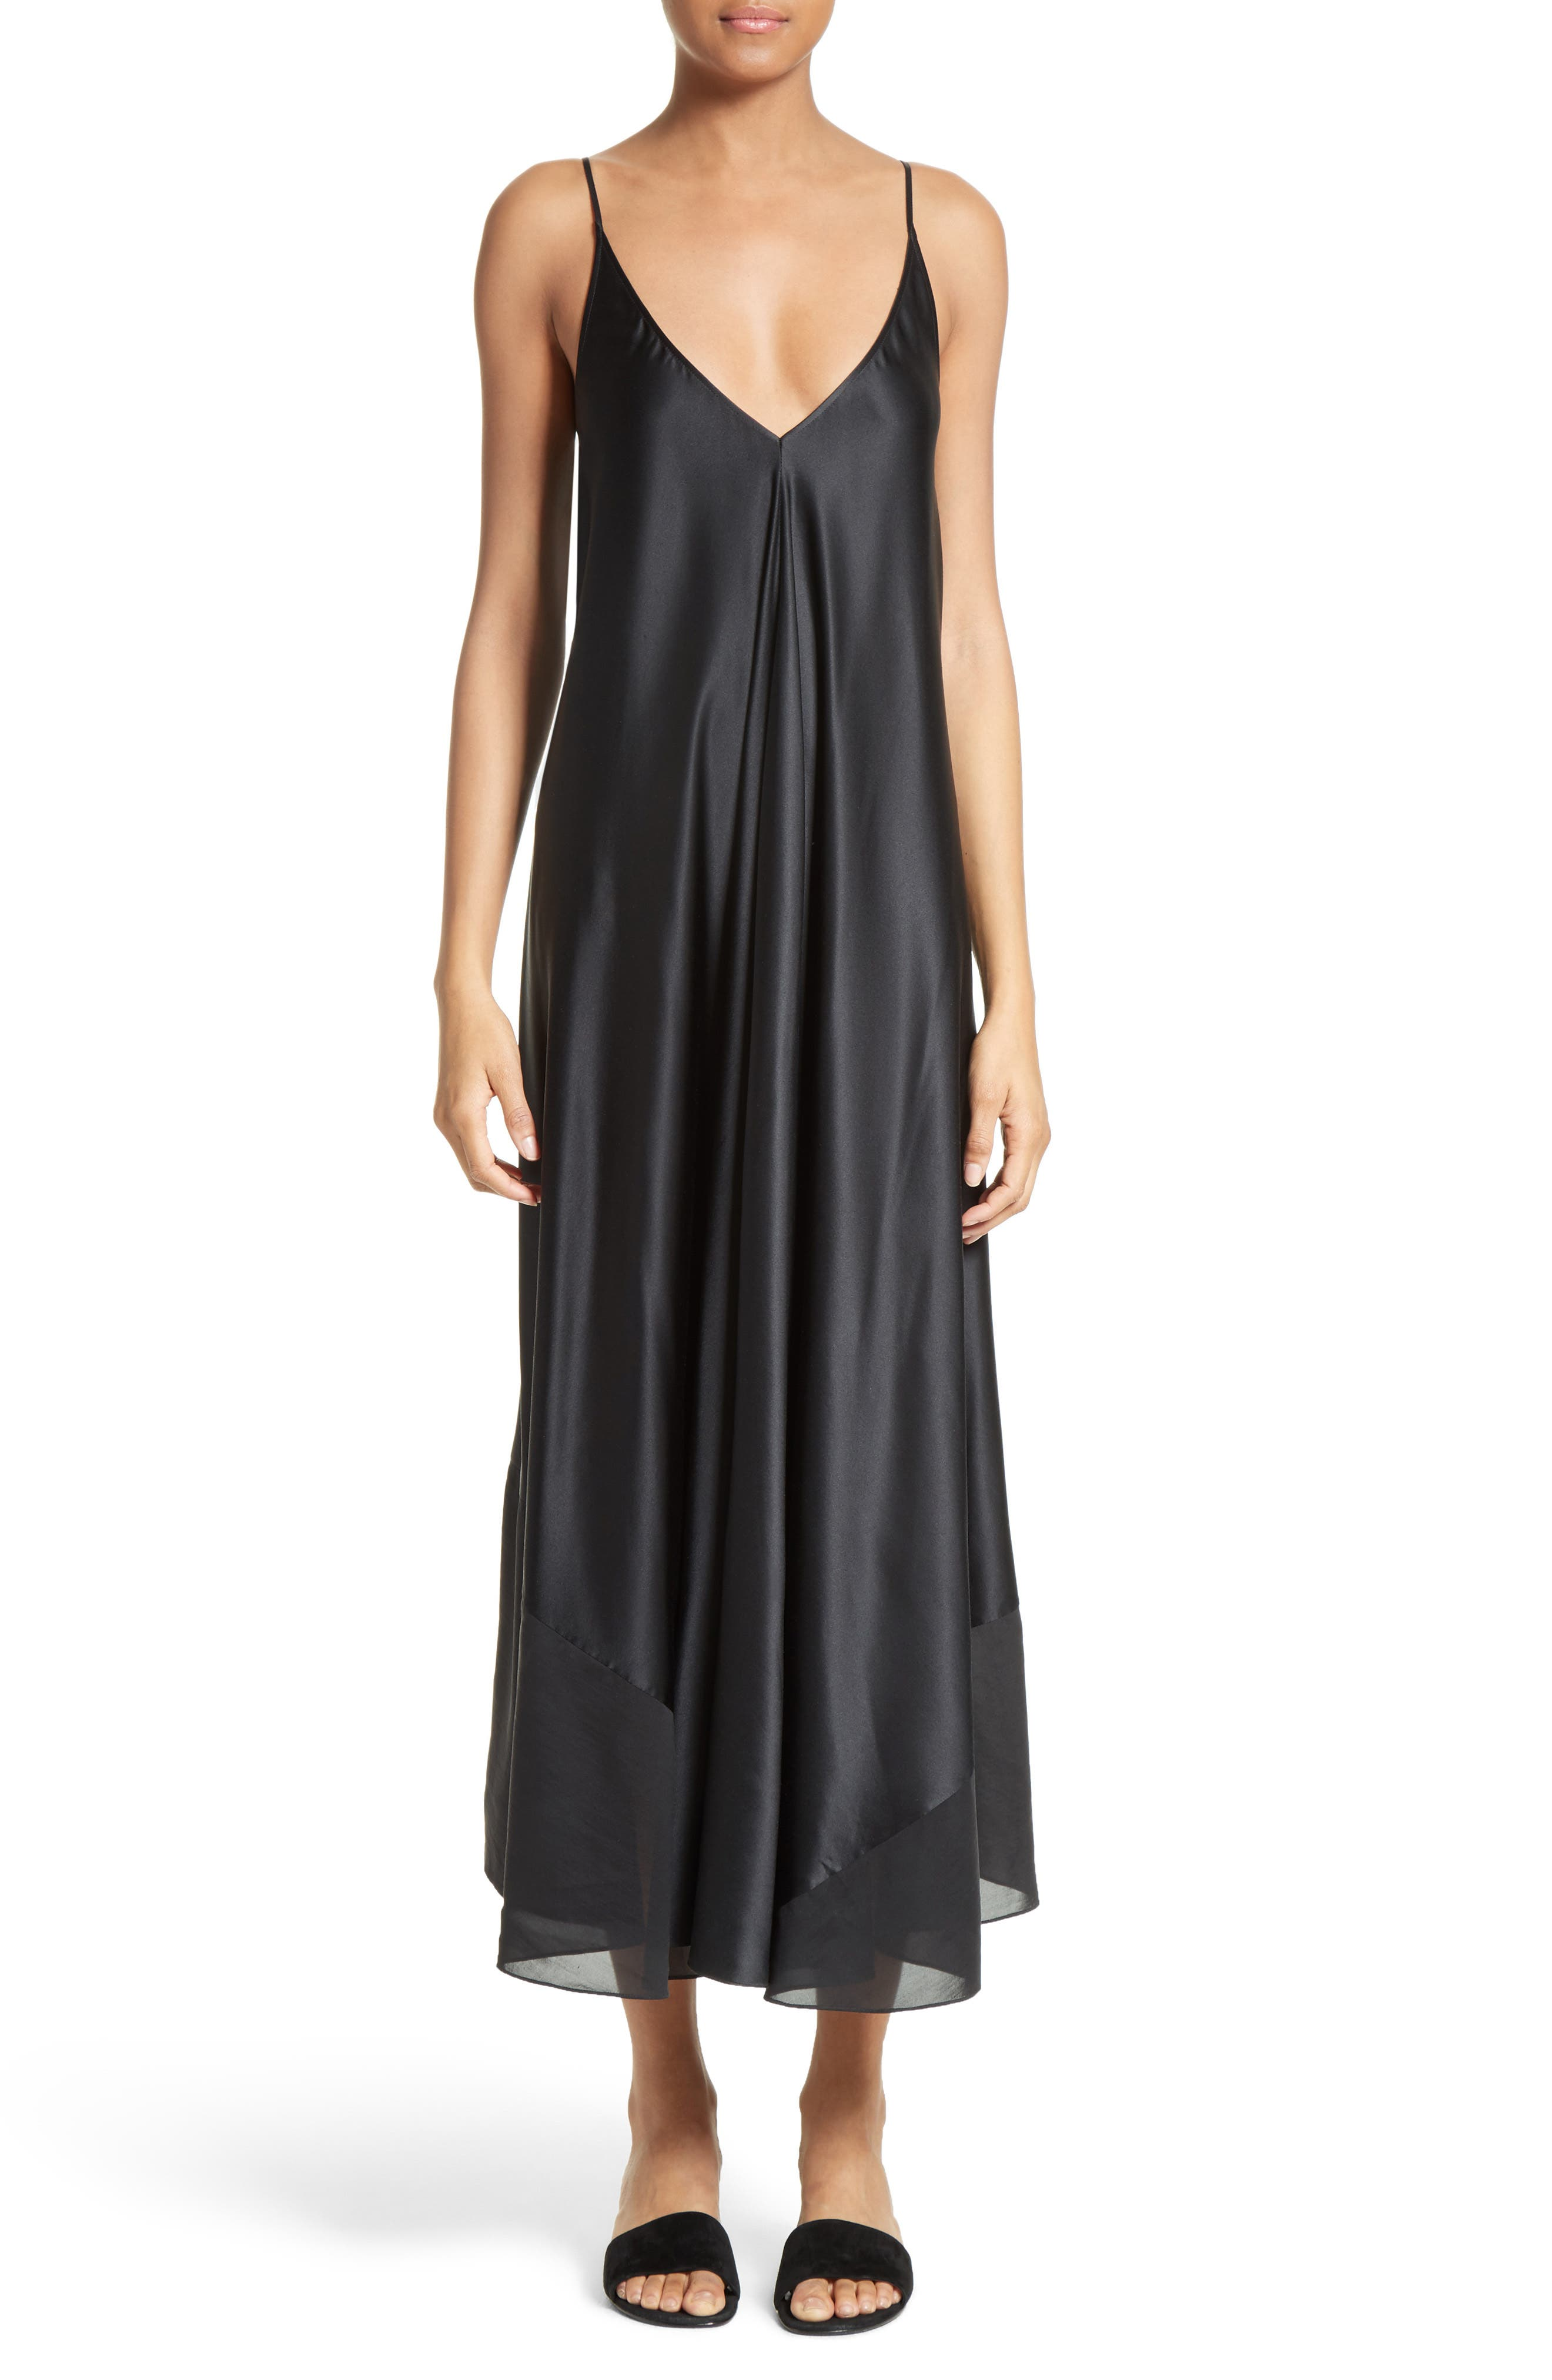 Alternate Image 1 Selected - T by Alexander Wang Silk Charmeuse Midi Dress